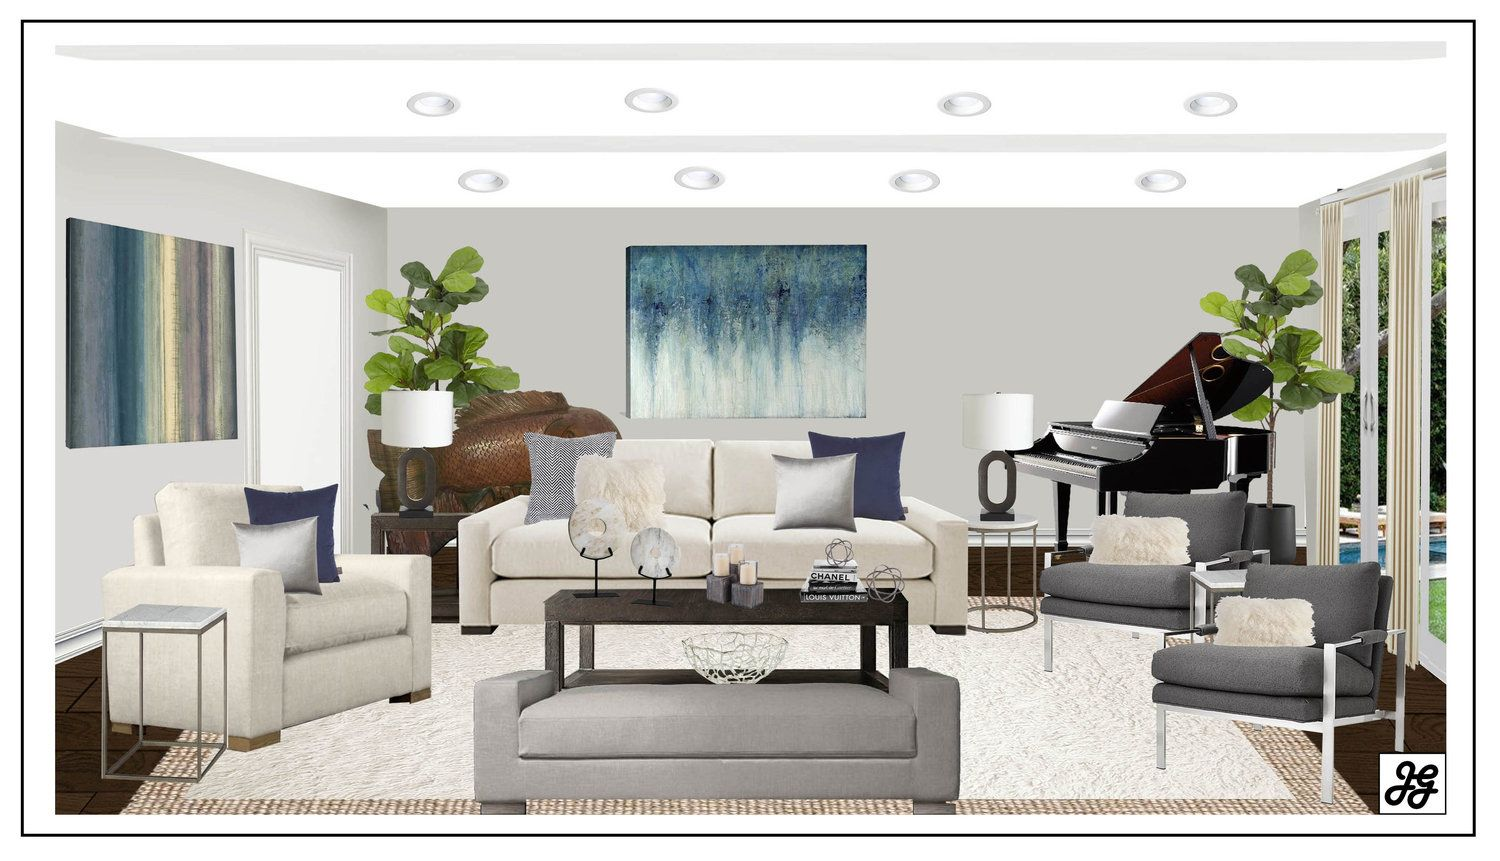 Living Room Design Online Alluring Contemporary Living Room Design Board Modern Farmhouse Living Room Decorating Inspiration